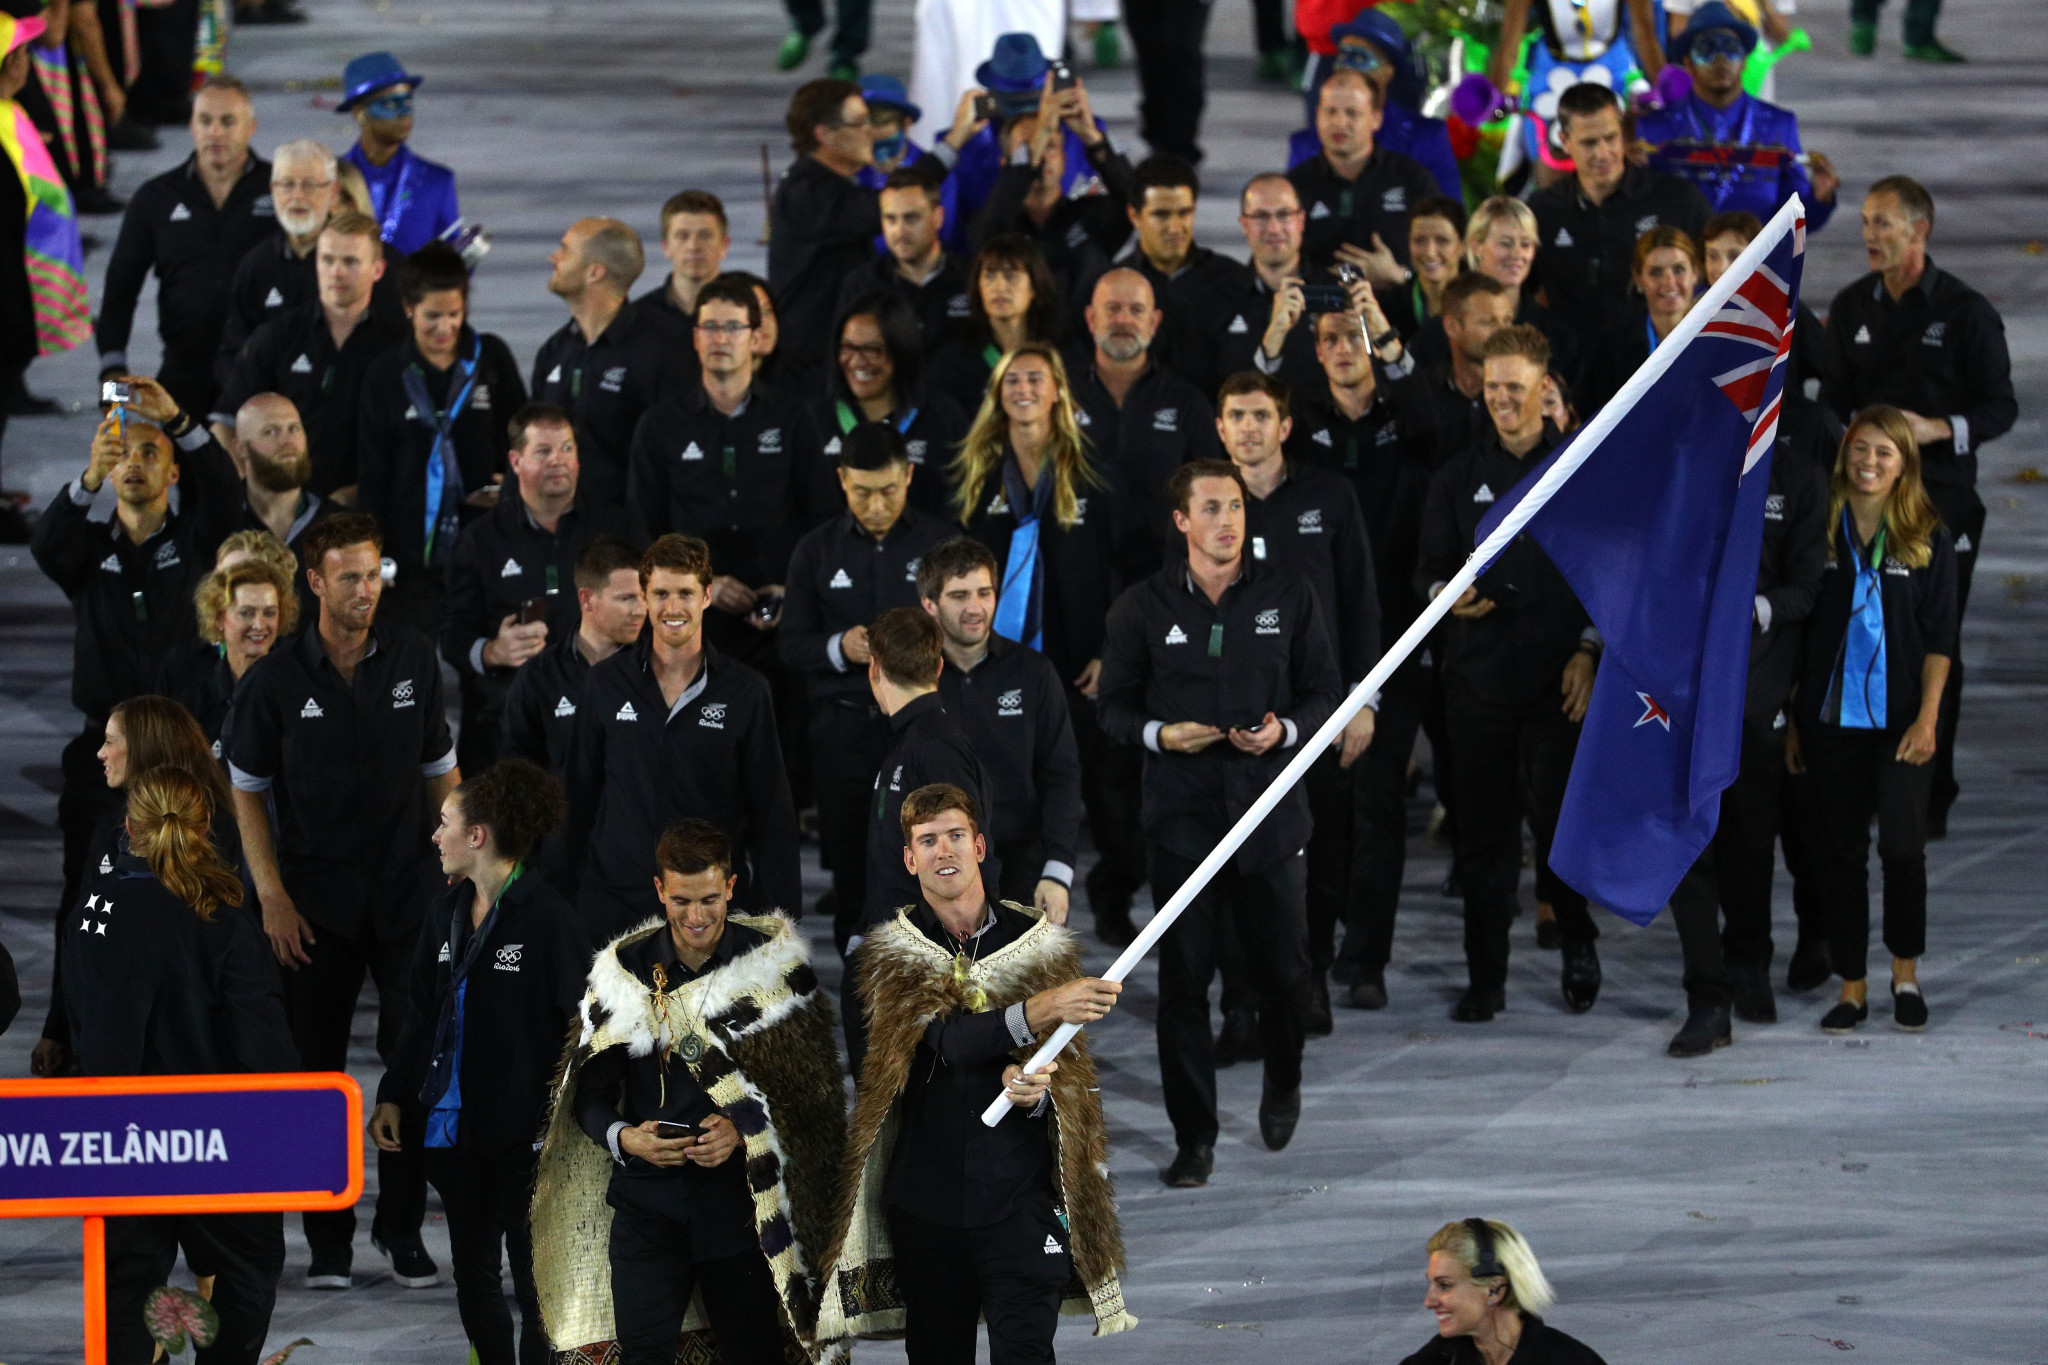 New Zealand sent a team of 199 athletes to the Rio 2016 Olympics, but is set to send between 200 and 220 to the rearranged Tokyo 2020 Games ©Getty Images